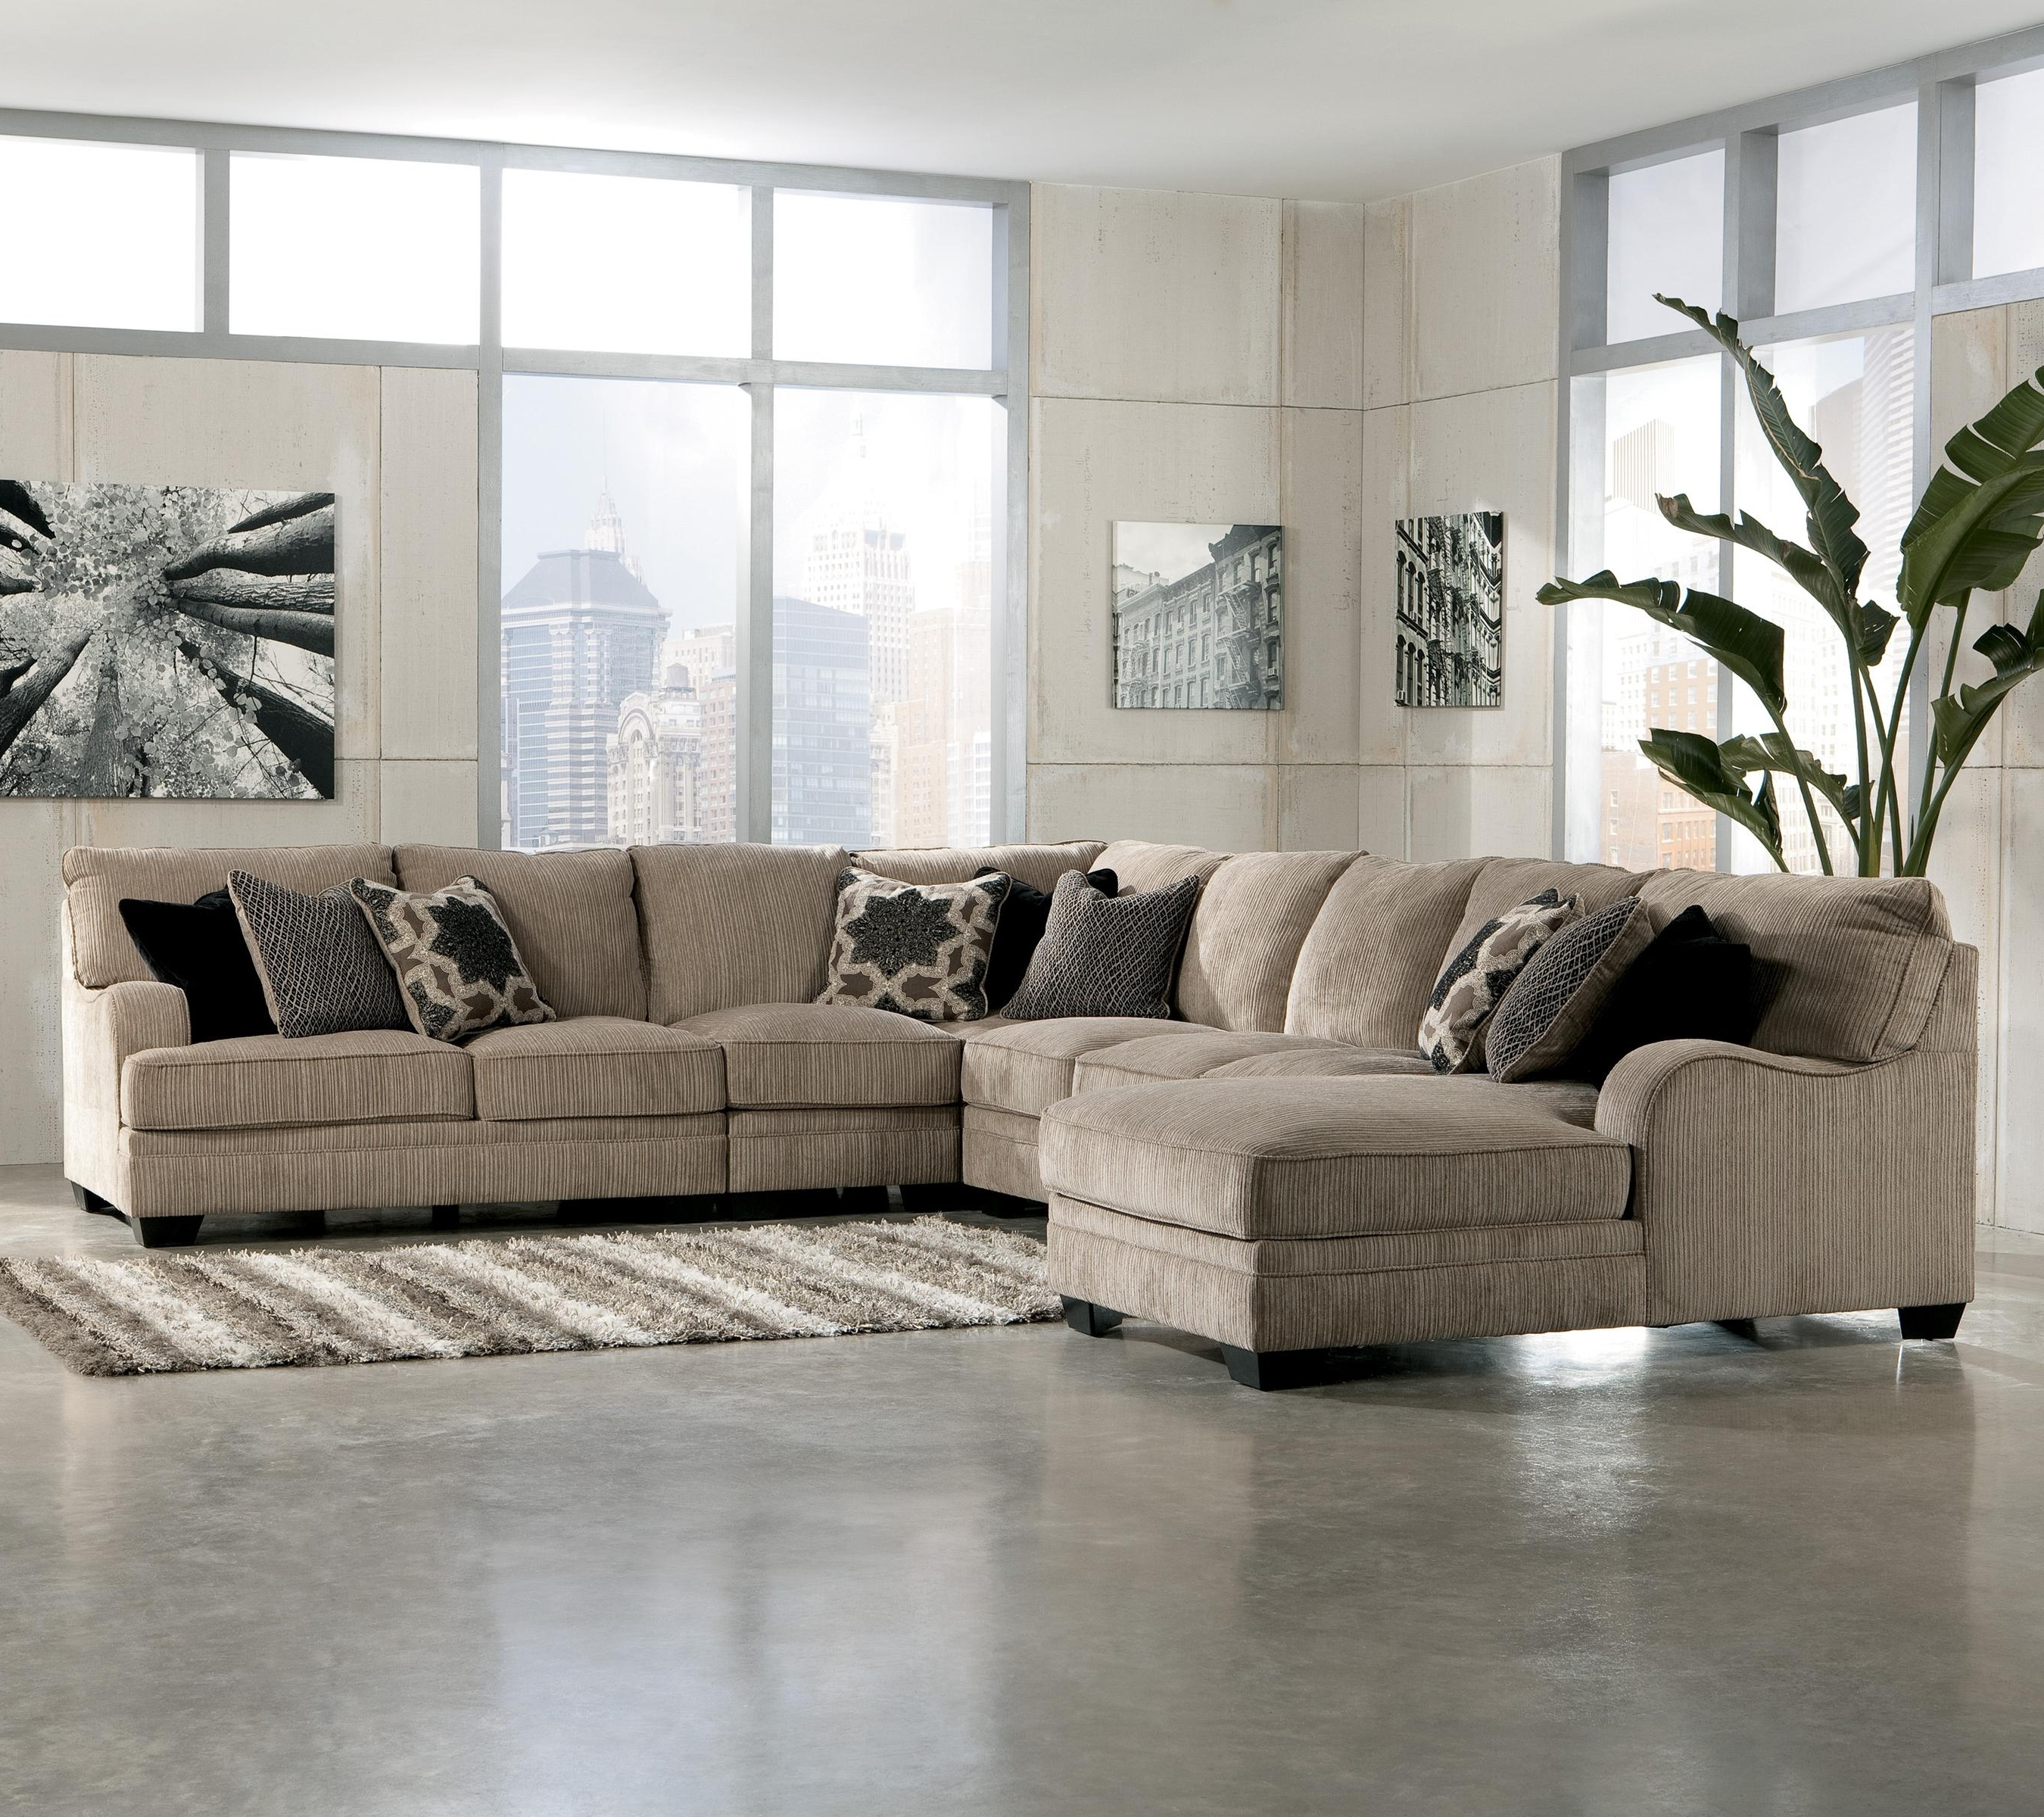 Trendy Living Room Sectional: Katisha 4 Piece Sectionalashley Inside Left Chaise Sectionals (View 12 of 15)